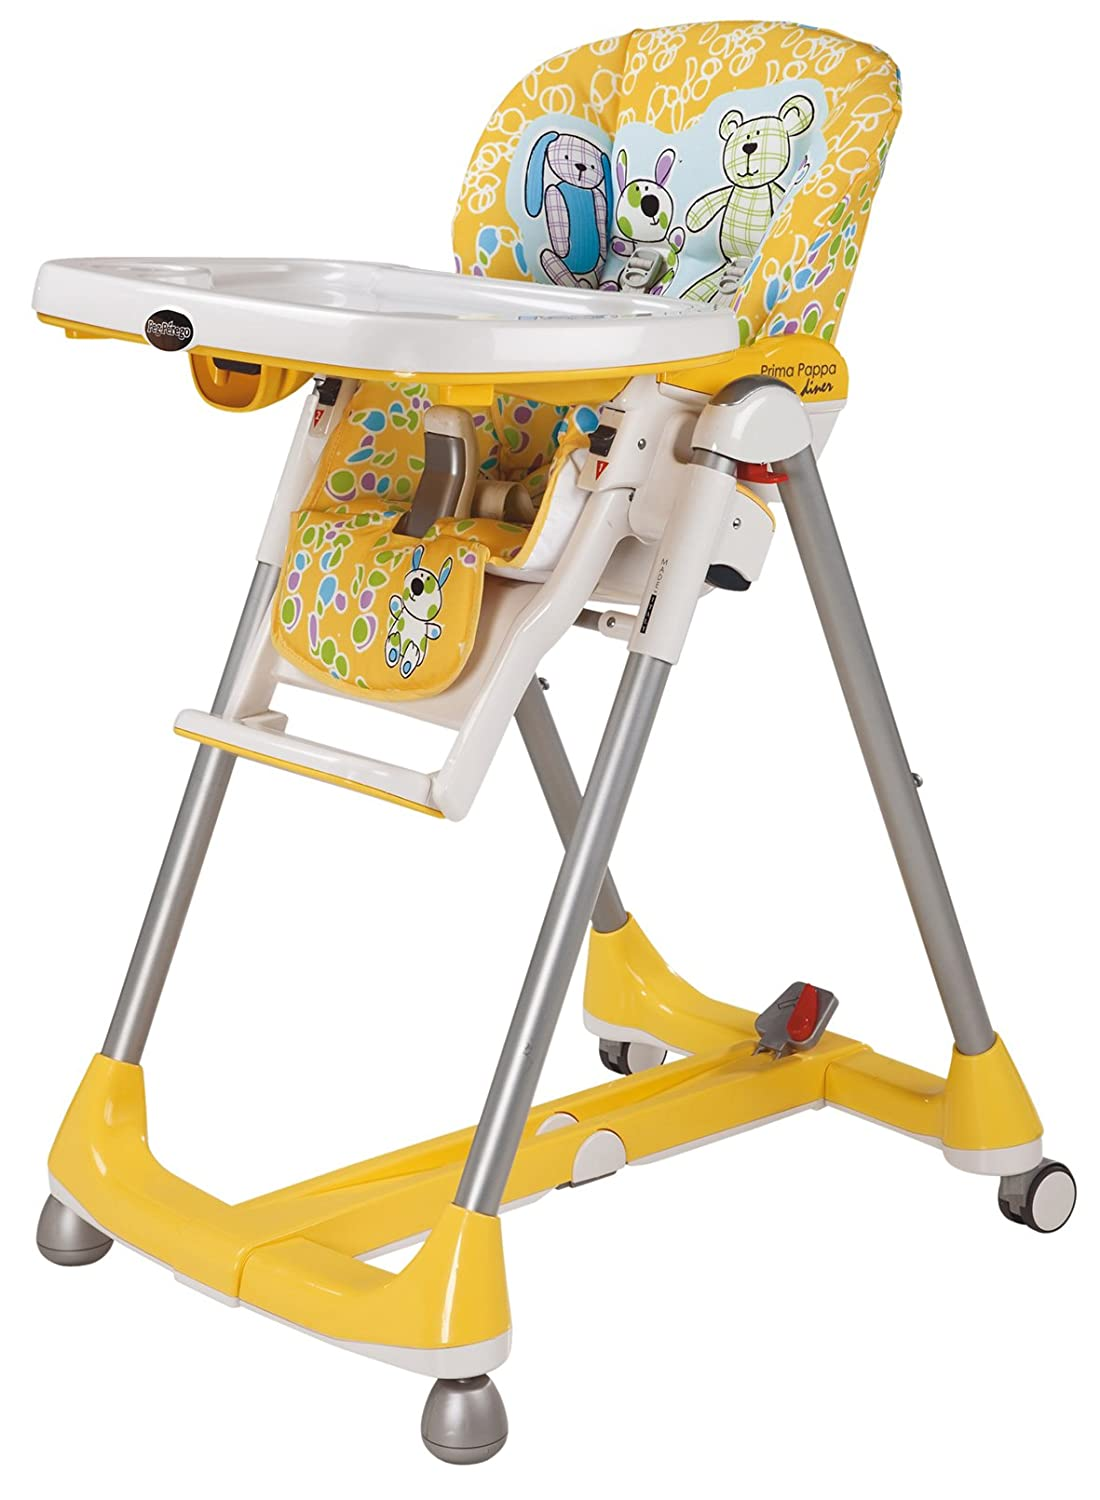 Peg Perego Prima Pappa Diner Highchair one size yellow